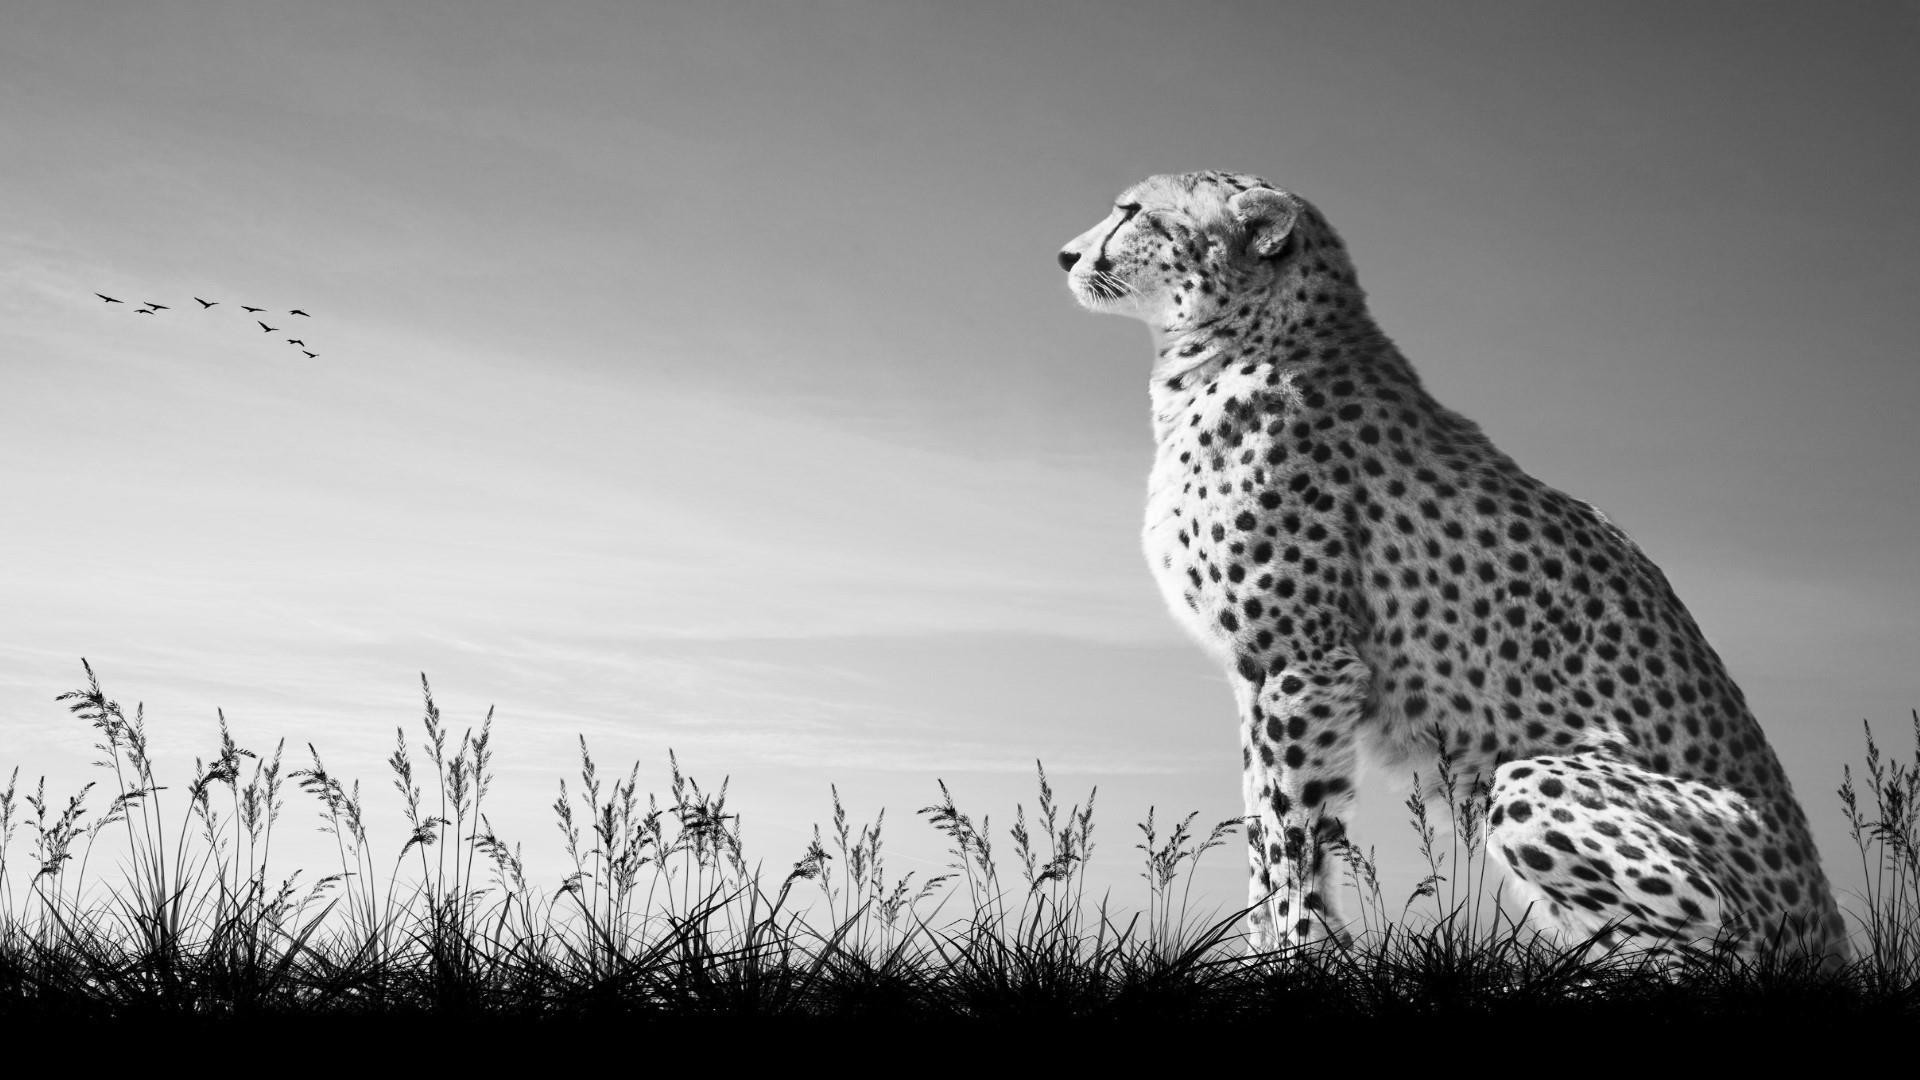 picture of a cheetah 66 black cheetah wallpapers on wallpaperplay picture a cheetah of